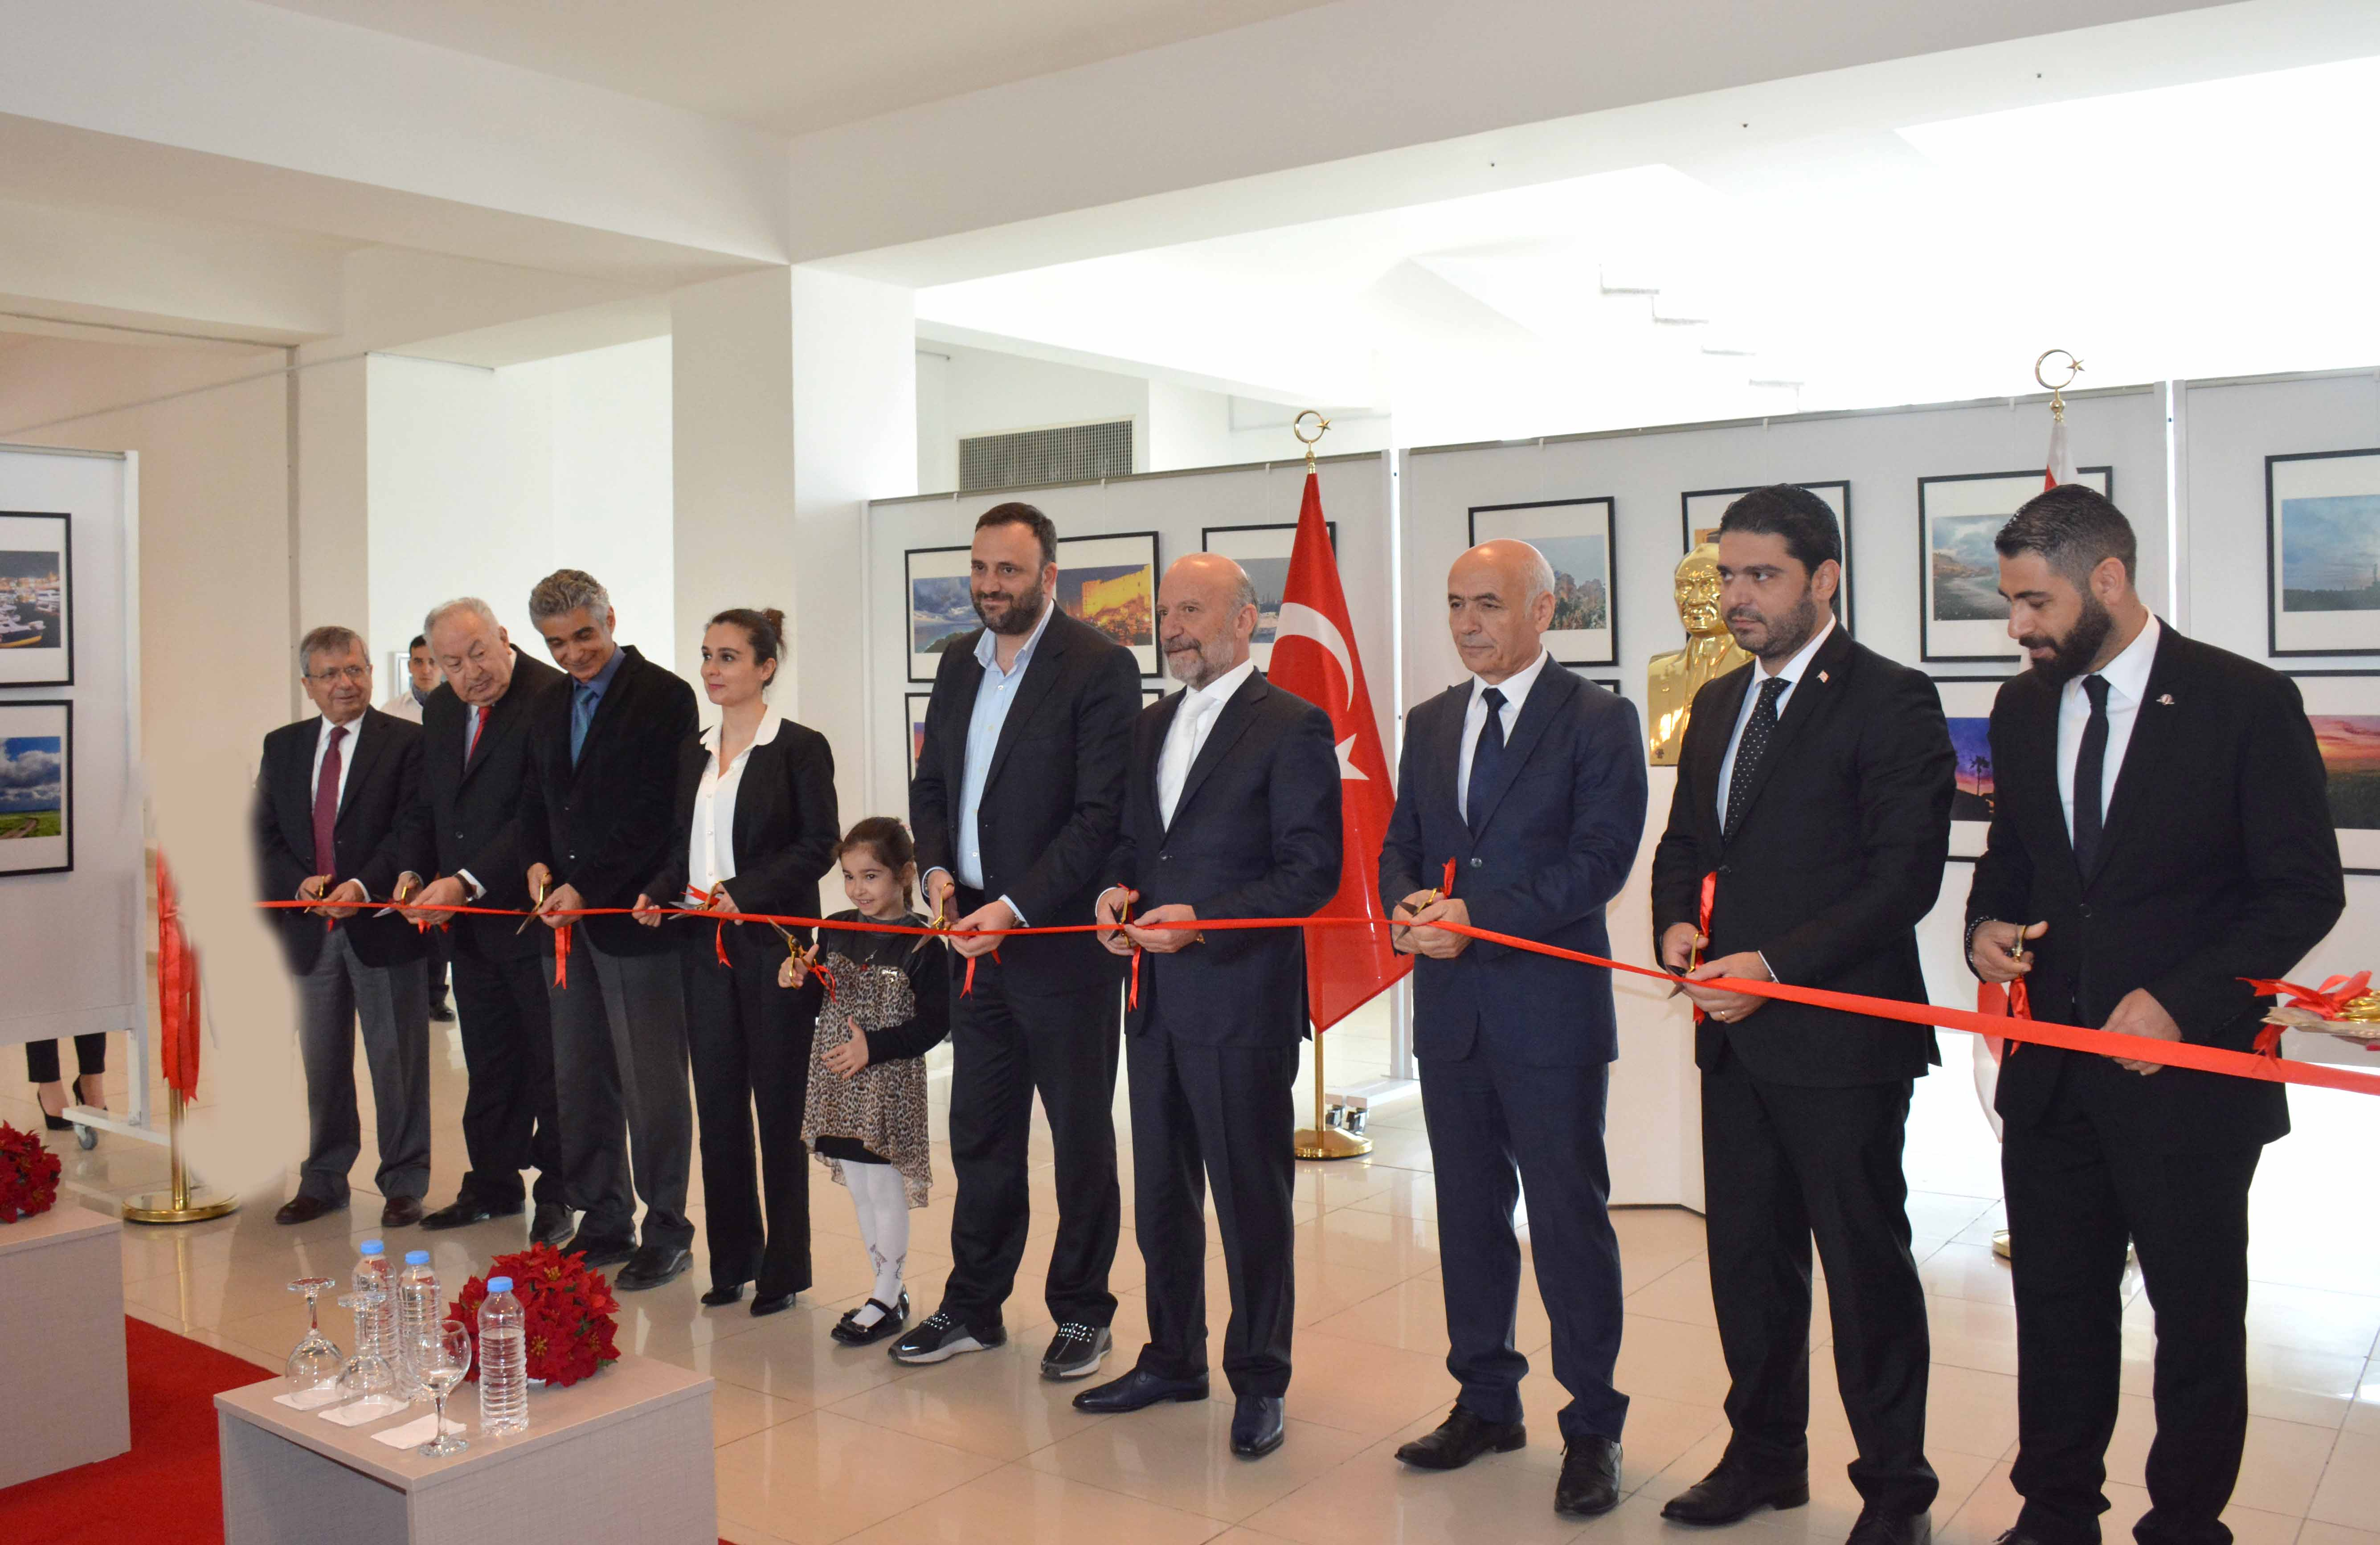 North Cyprus Mixed Photo Painting Exhibition of Elif Tuncel and Ediz Tuncel consisting of 130 photo-paintings opened by Zeki Çeler, Minister of Labor and Social Security